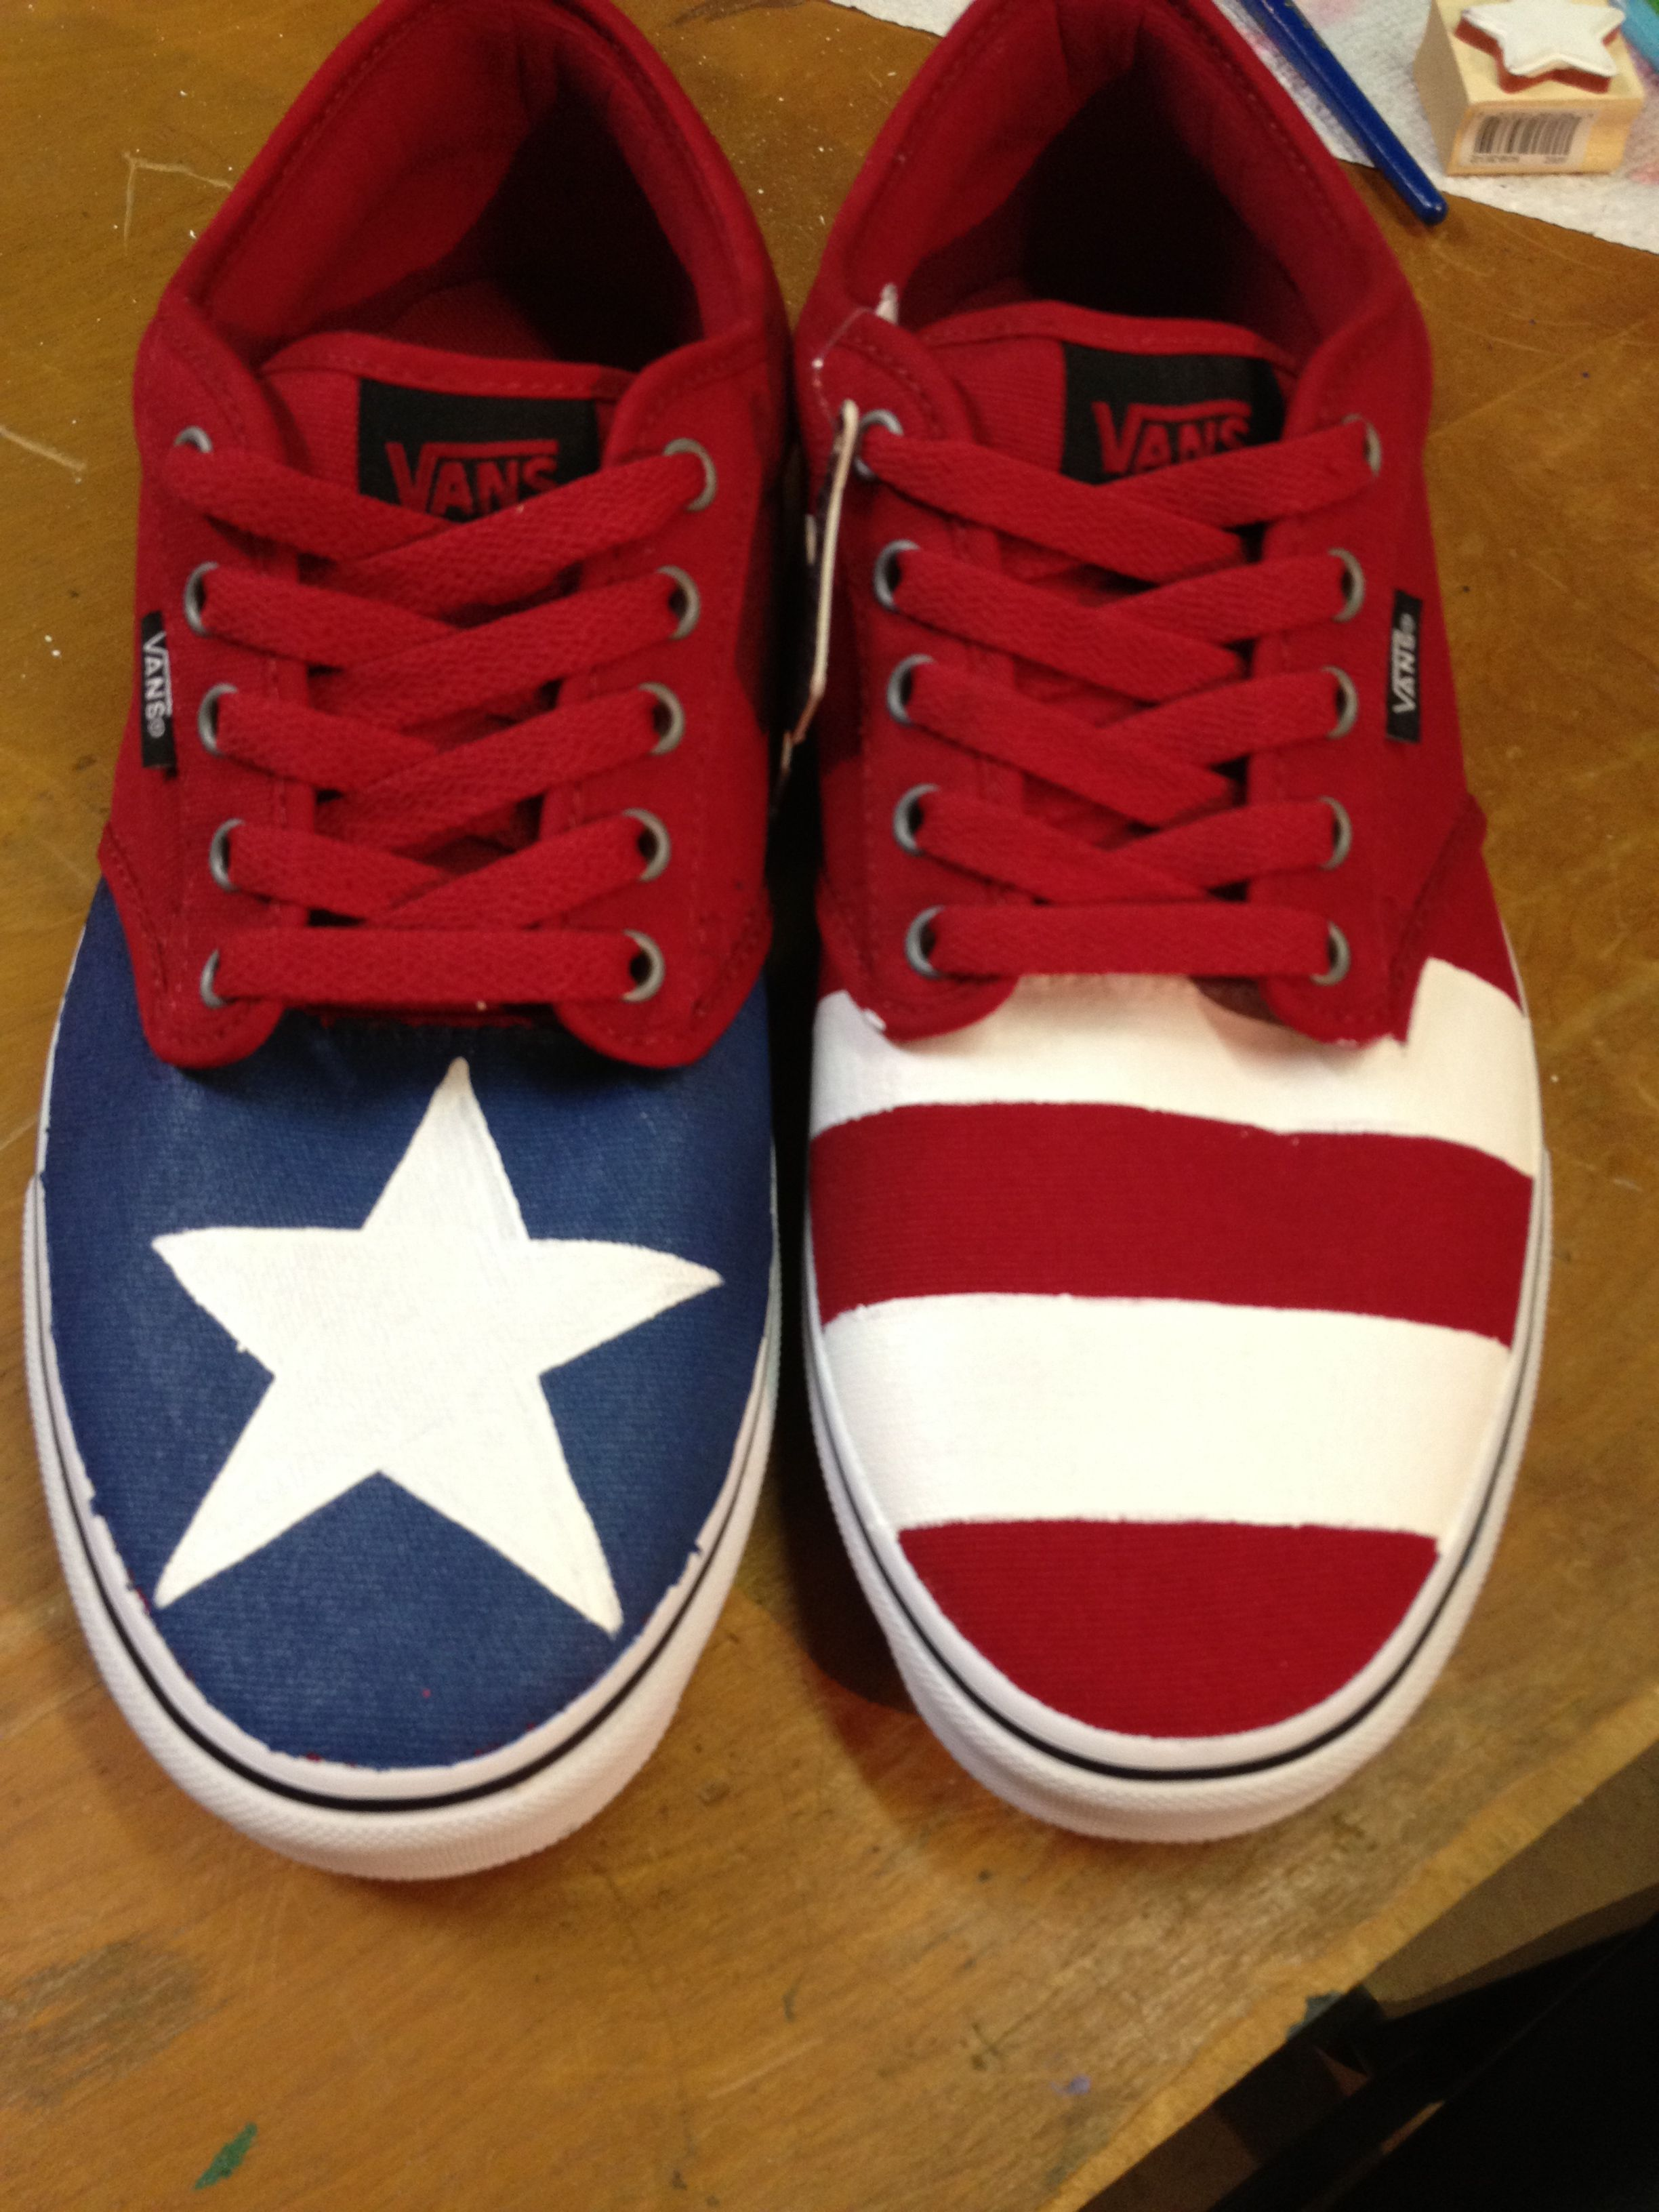 Puerto Rican Flag Vans If You Would Like A Pair Of Custom Vans Send Me An Email Here Custompaintedkicks Puerto Rican Festival Puerto Ricans Puerto Rican Flag